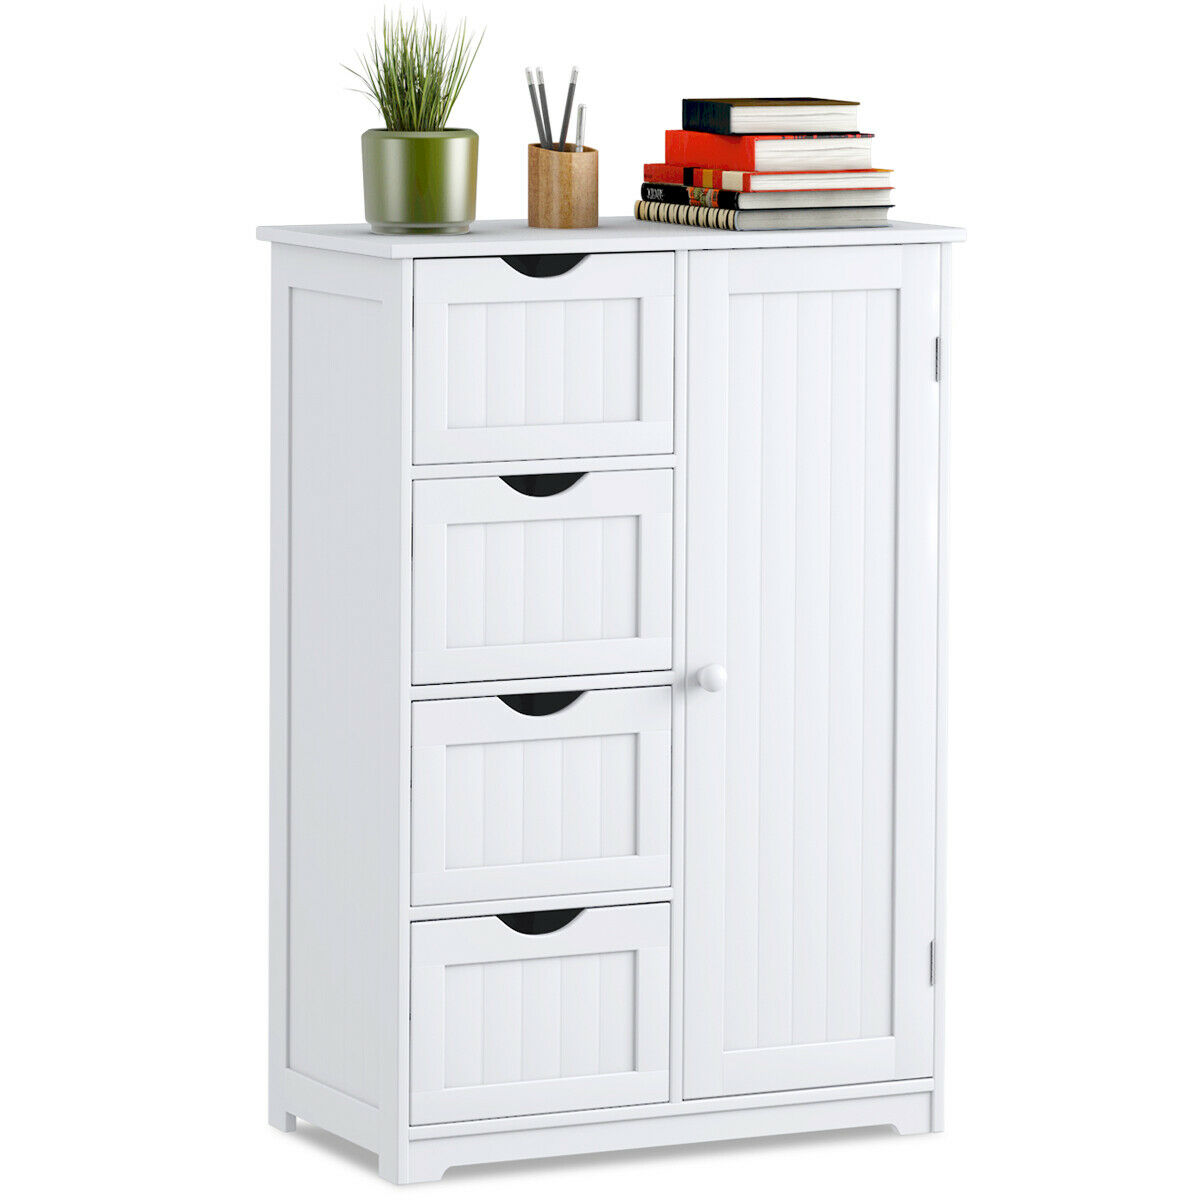 Goplus Wooden 4 Drawer Bathroom Cabinet